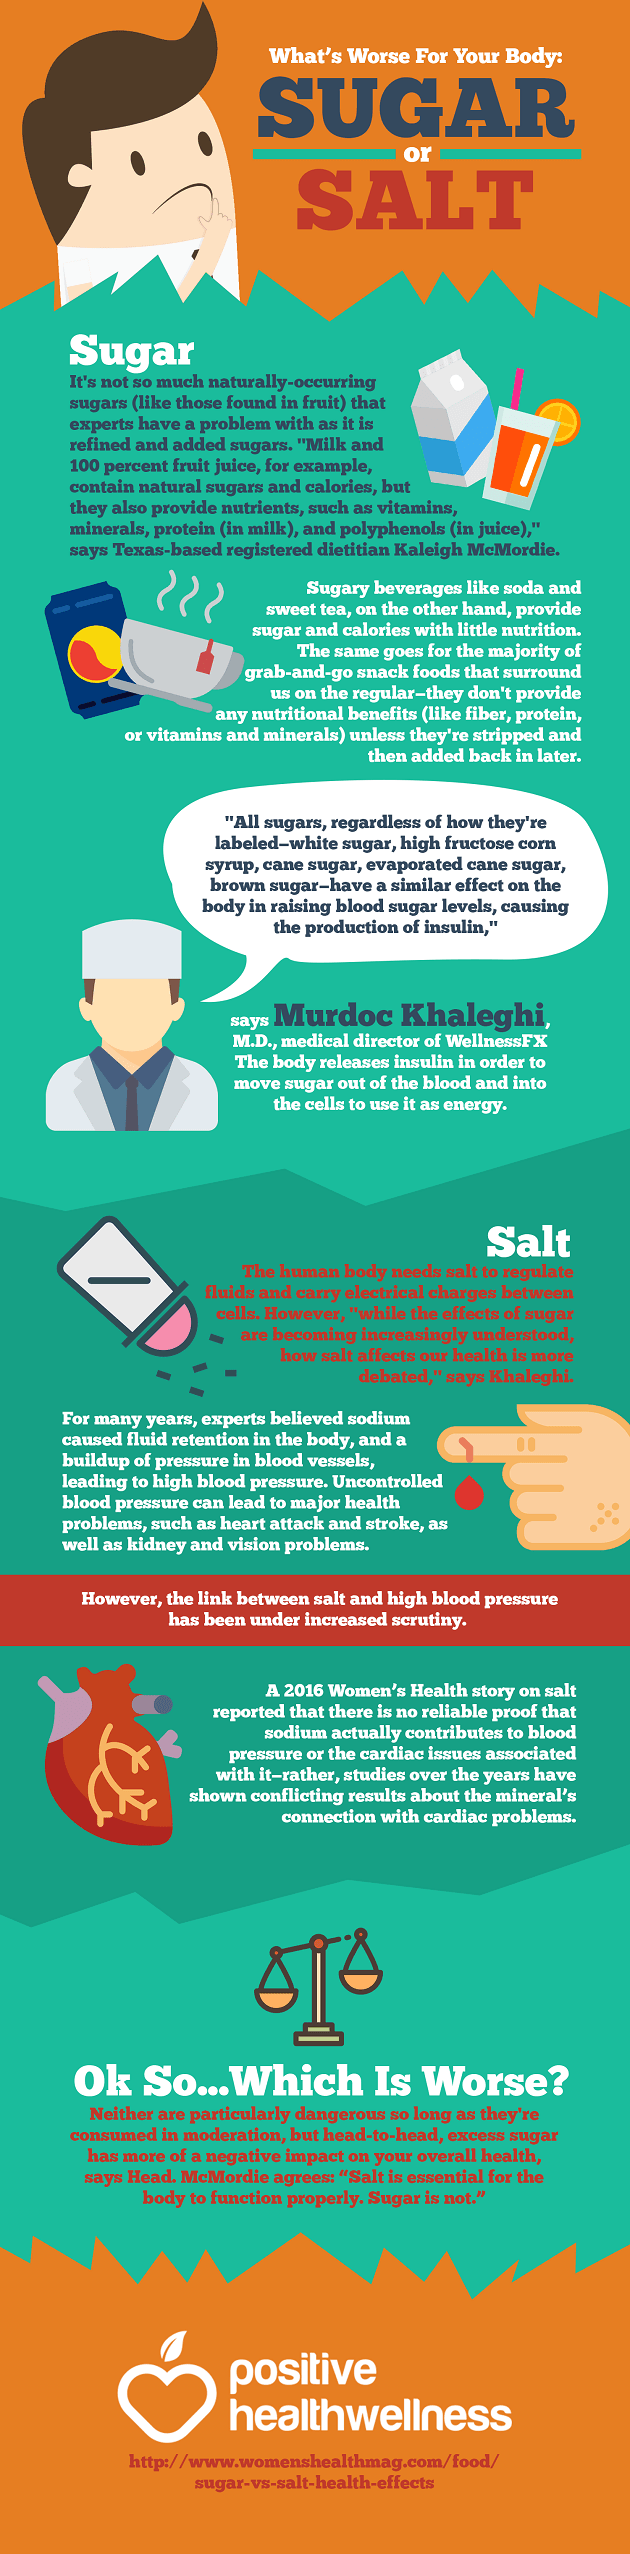 What's Worse for Your Bod: Sugar or Salt?